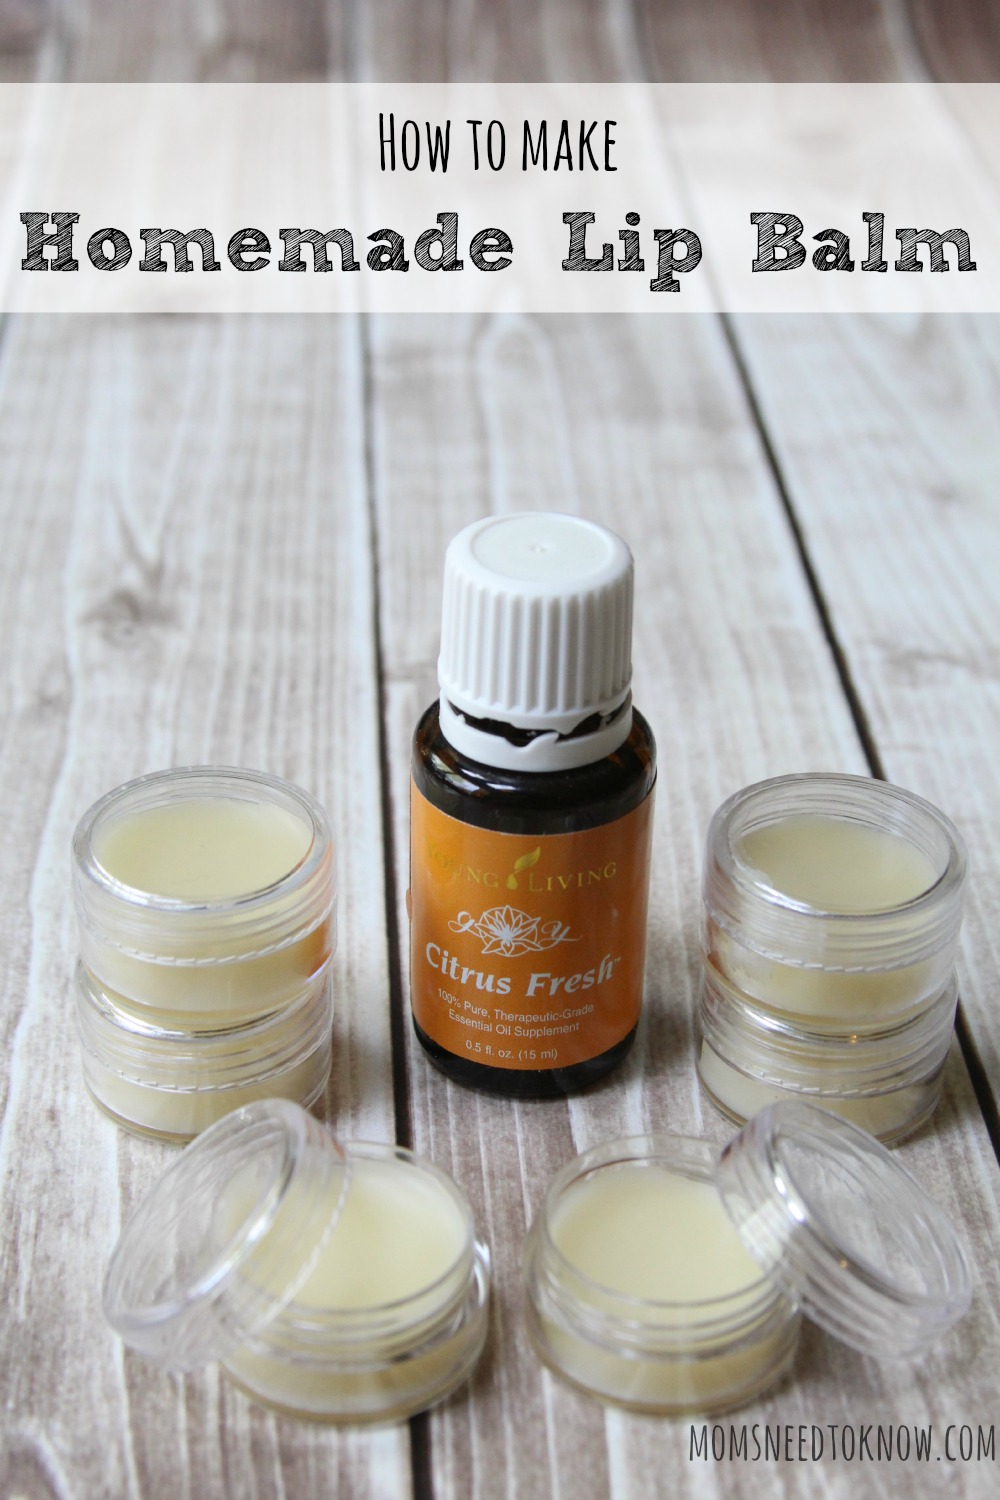 Diy Lip Balm Flavors Homemade Lip Balm Recipe Made With Beeswax And Shea